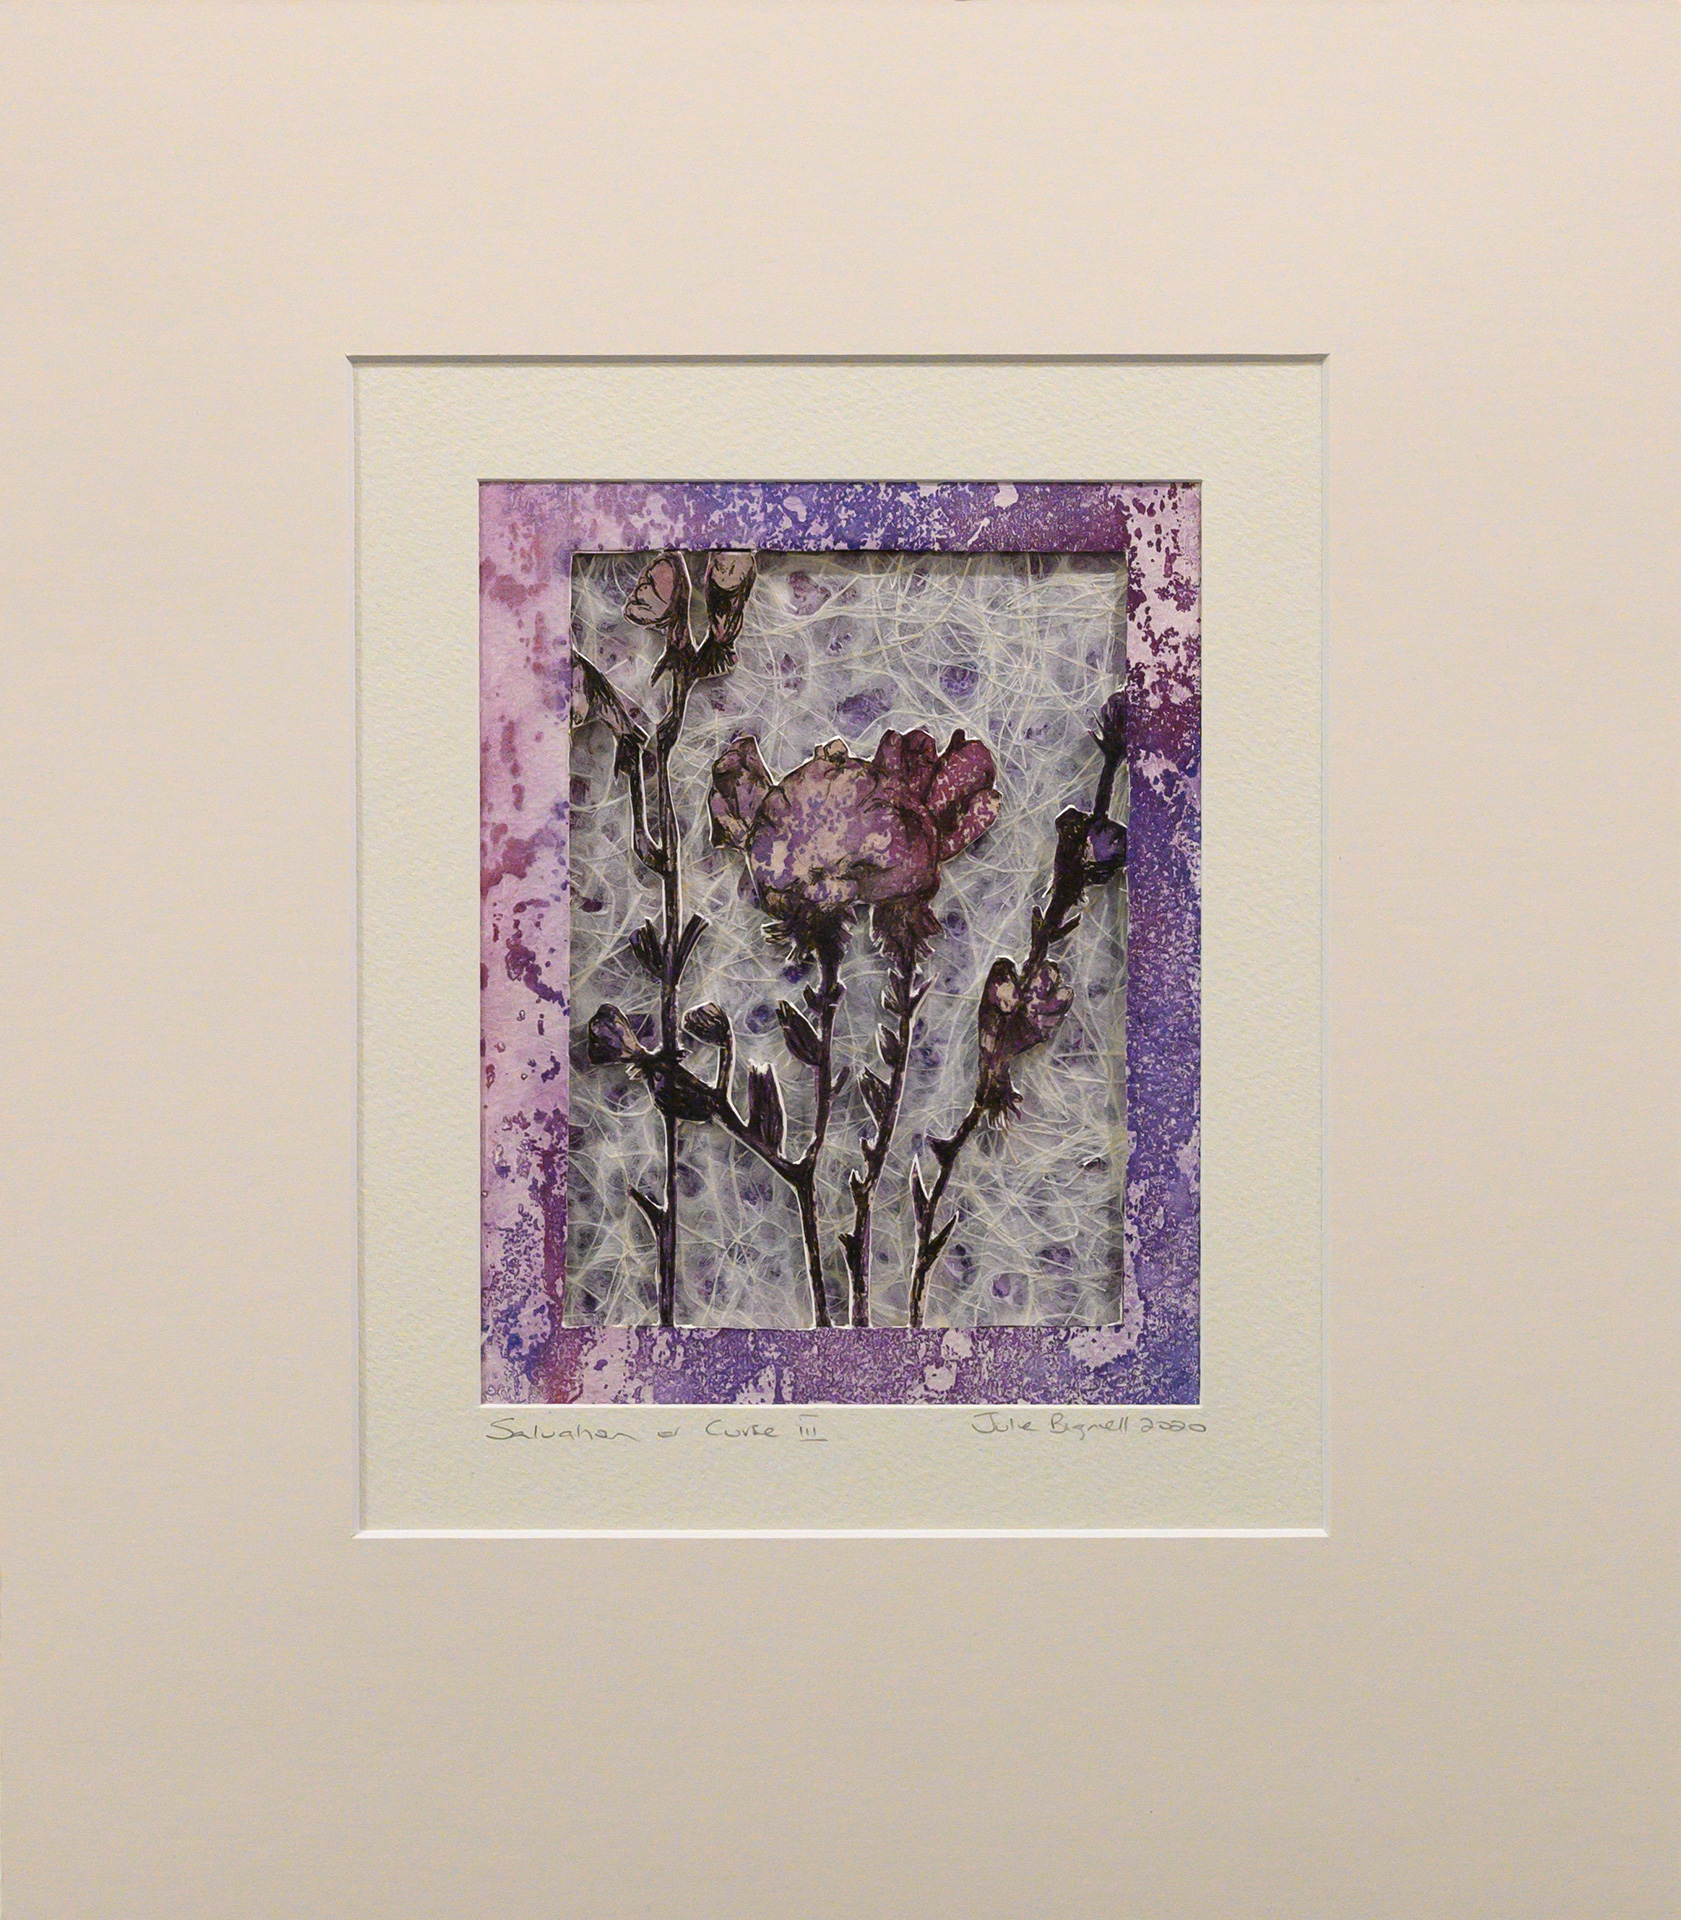 Unframed artwork by Julie Bignell of purple flowers cut out in the foreground with textured cream & purple coloured paper in the background and a printed purple border